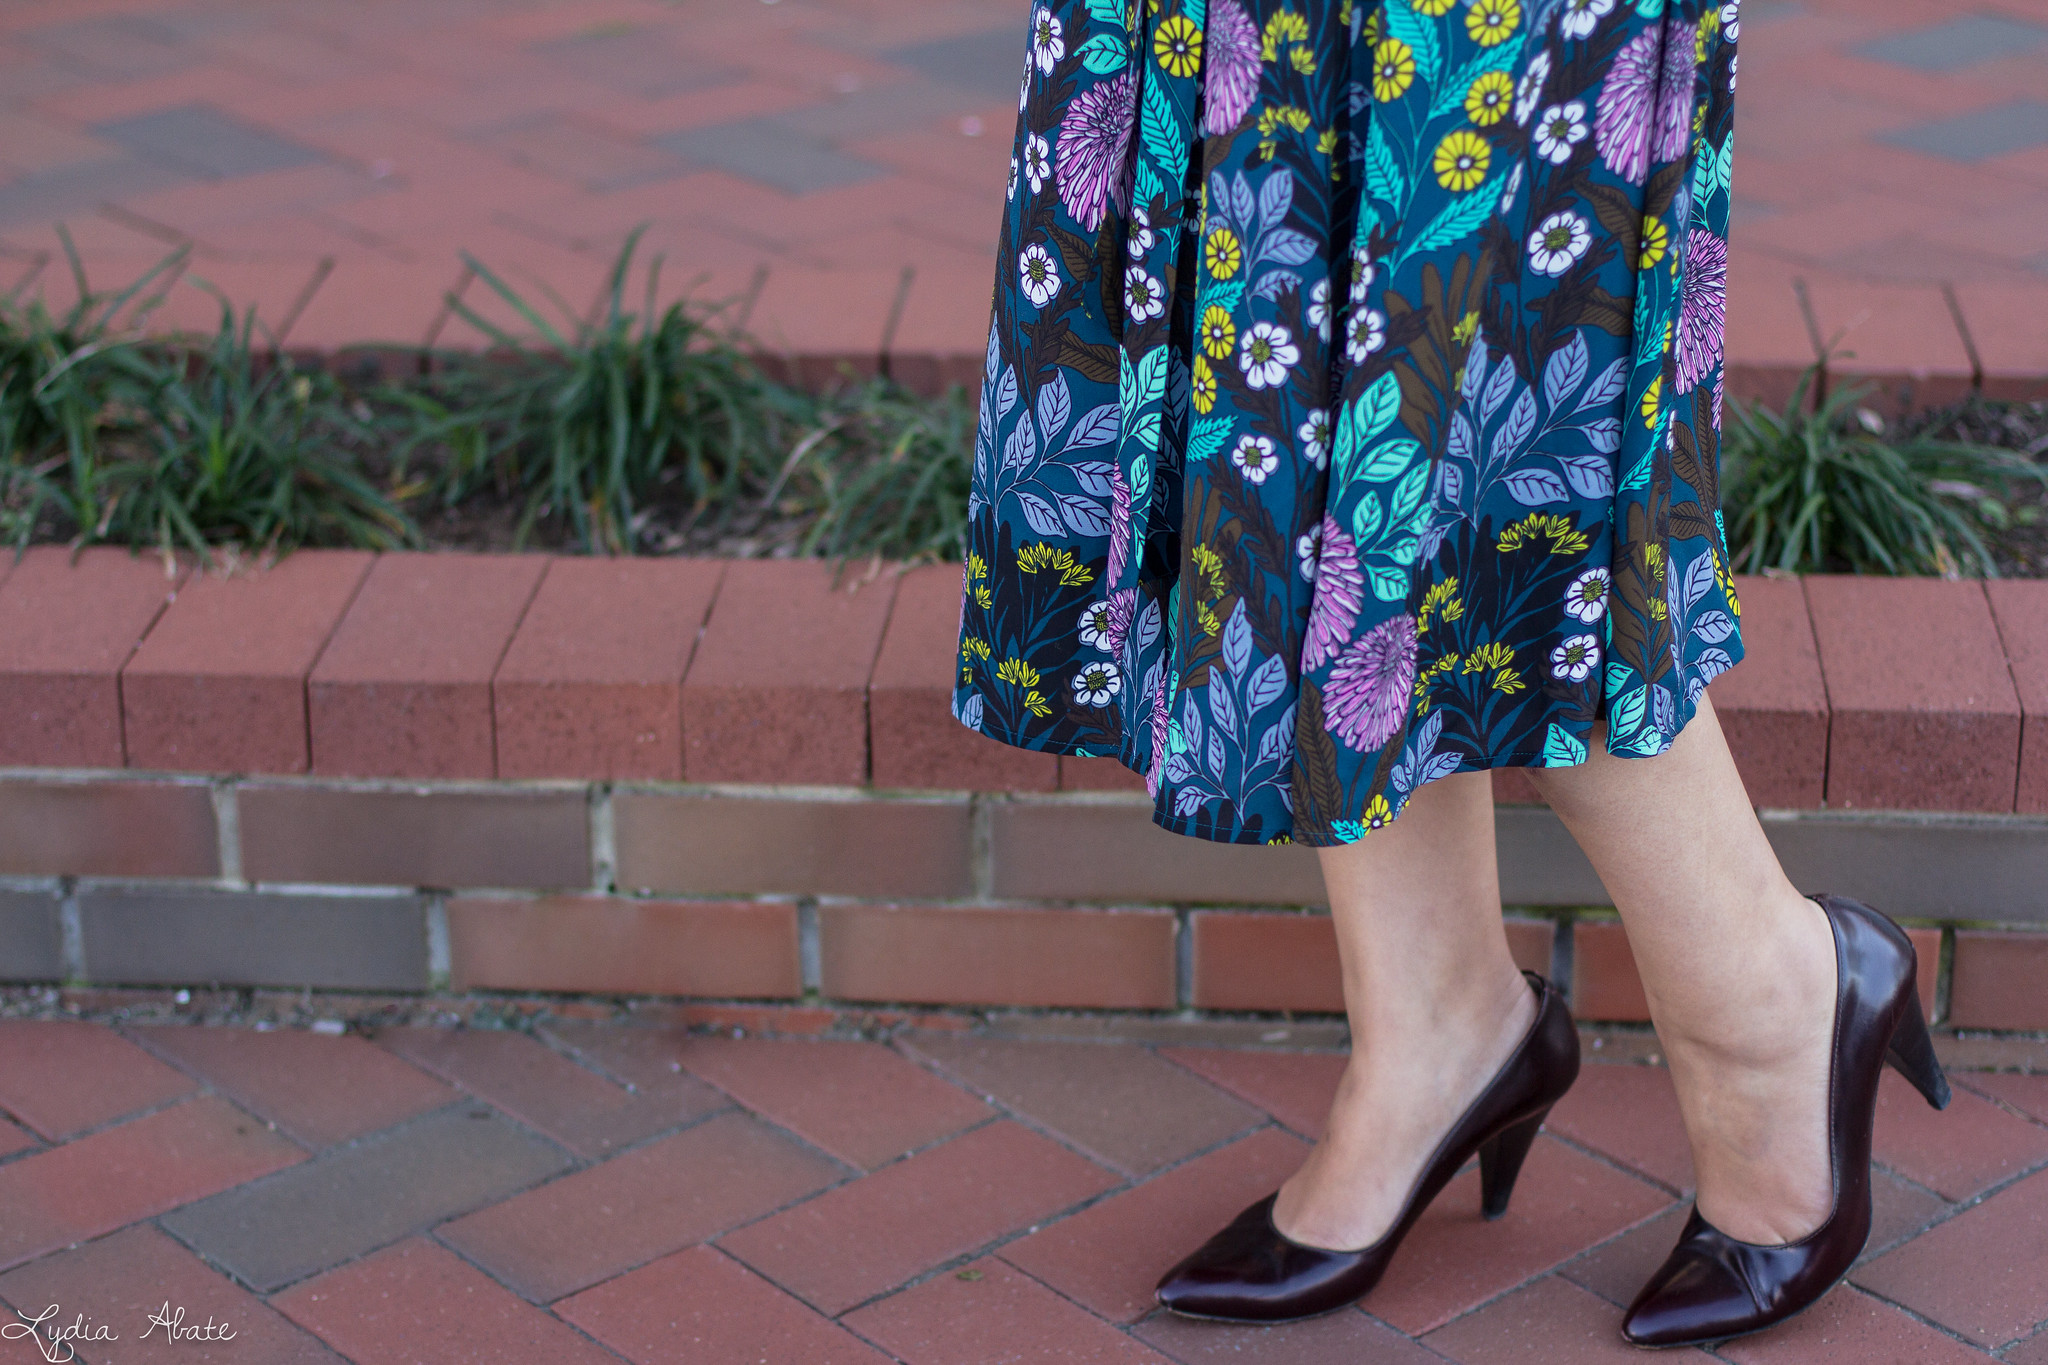 J.Crew X Abigail Borg shirtdress, leopard clutch, coach pumps-8.jpg